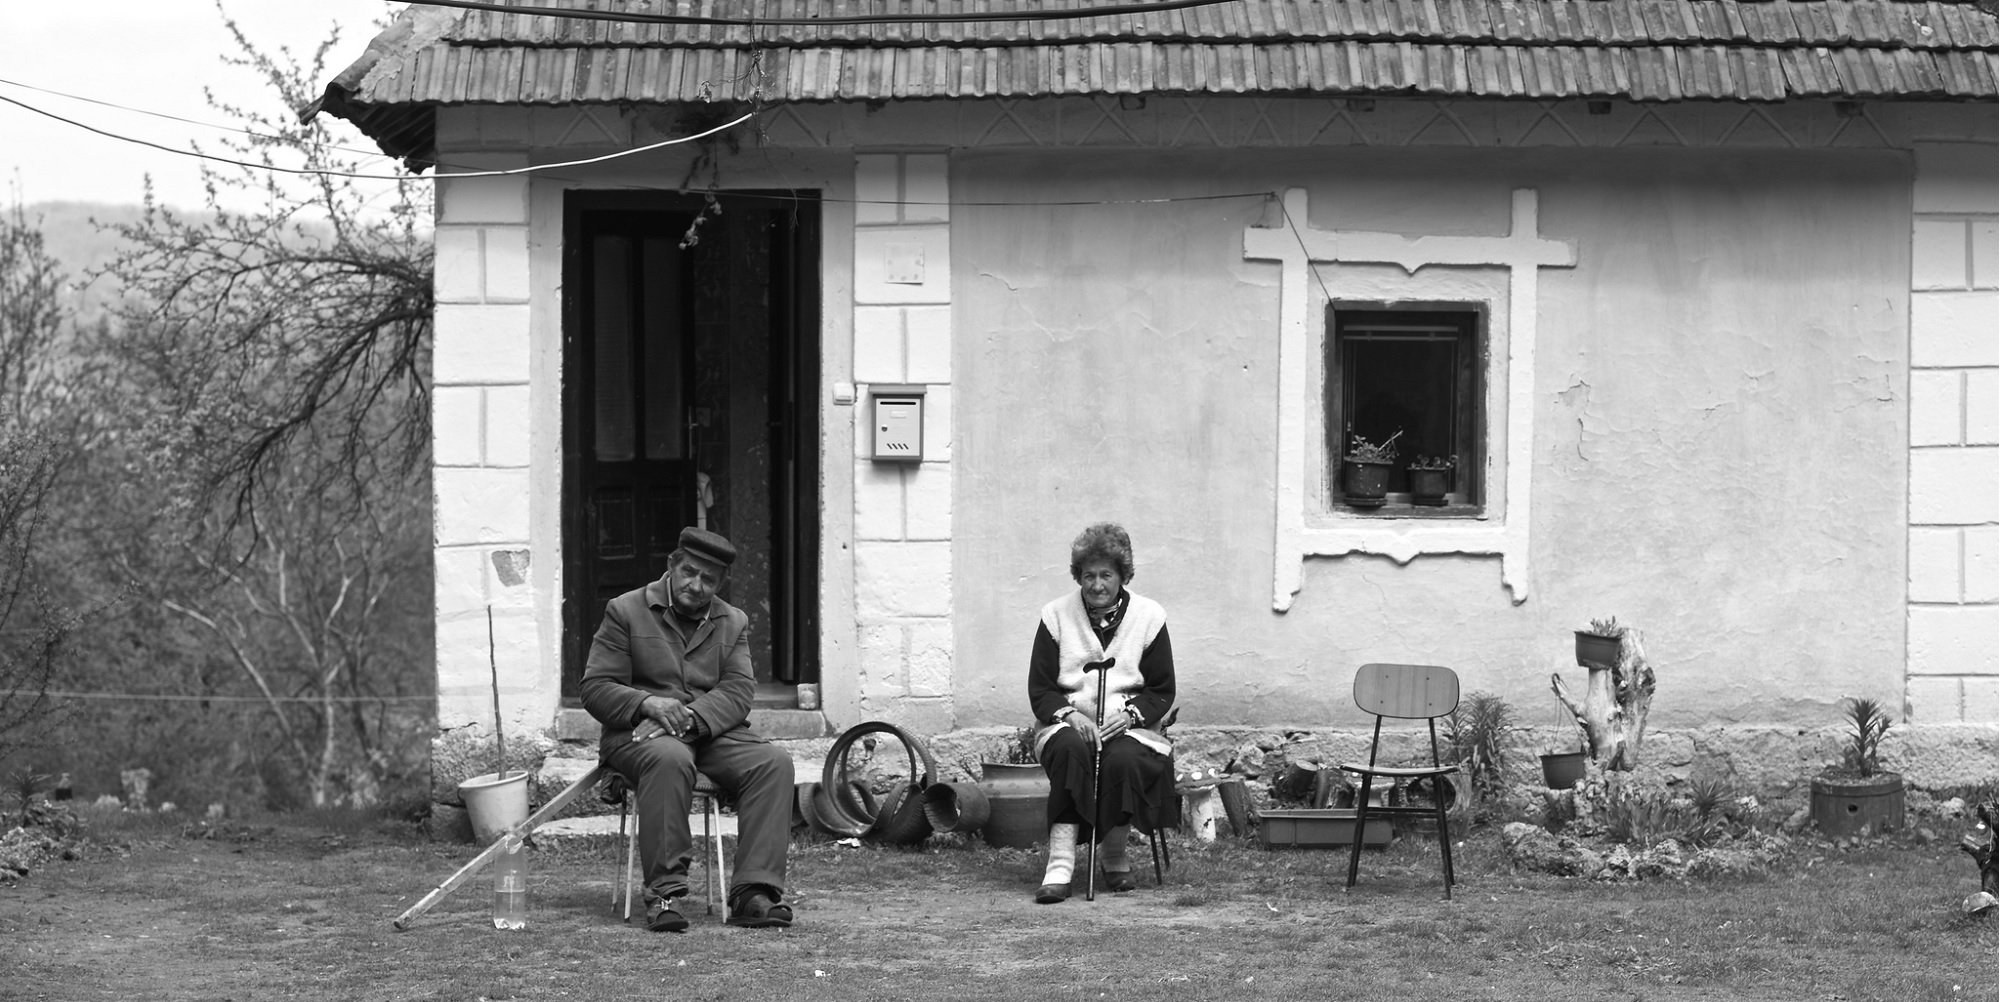 Rural isolation in Serbia has an impact on older people's physical and mental health (c) Geir Tonnessen/CC BY 2.0